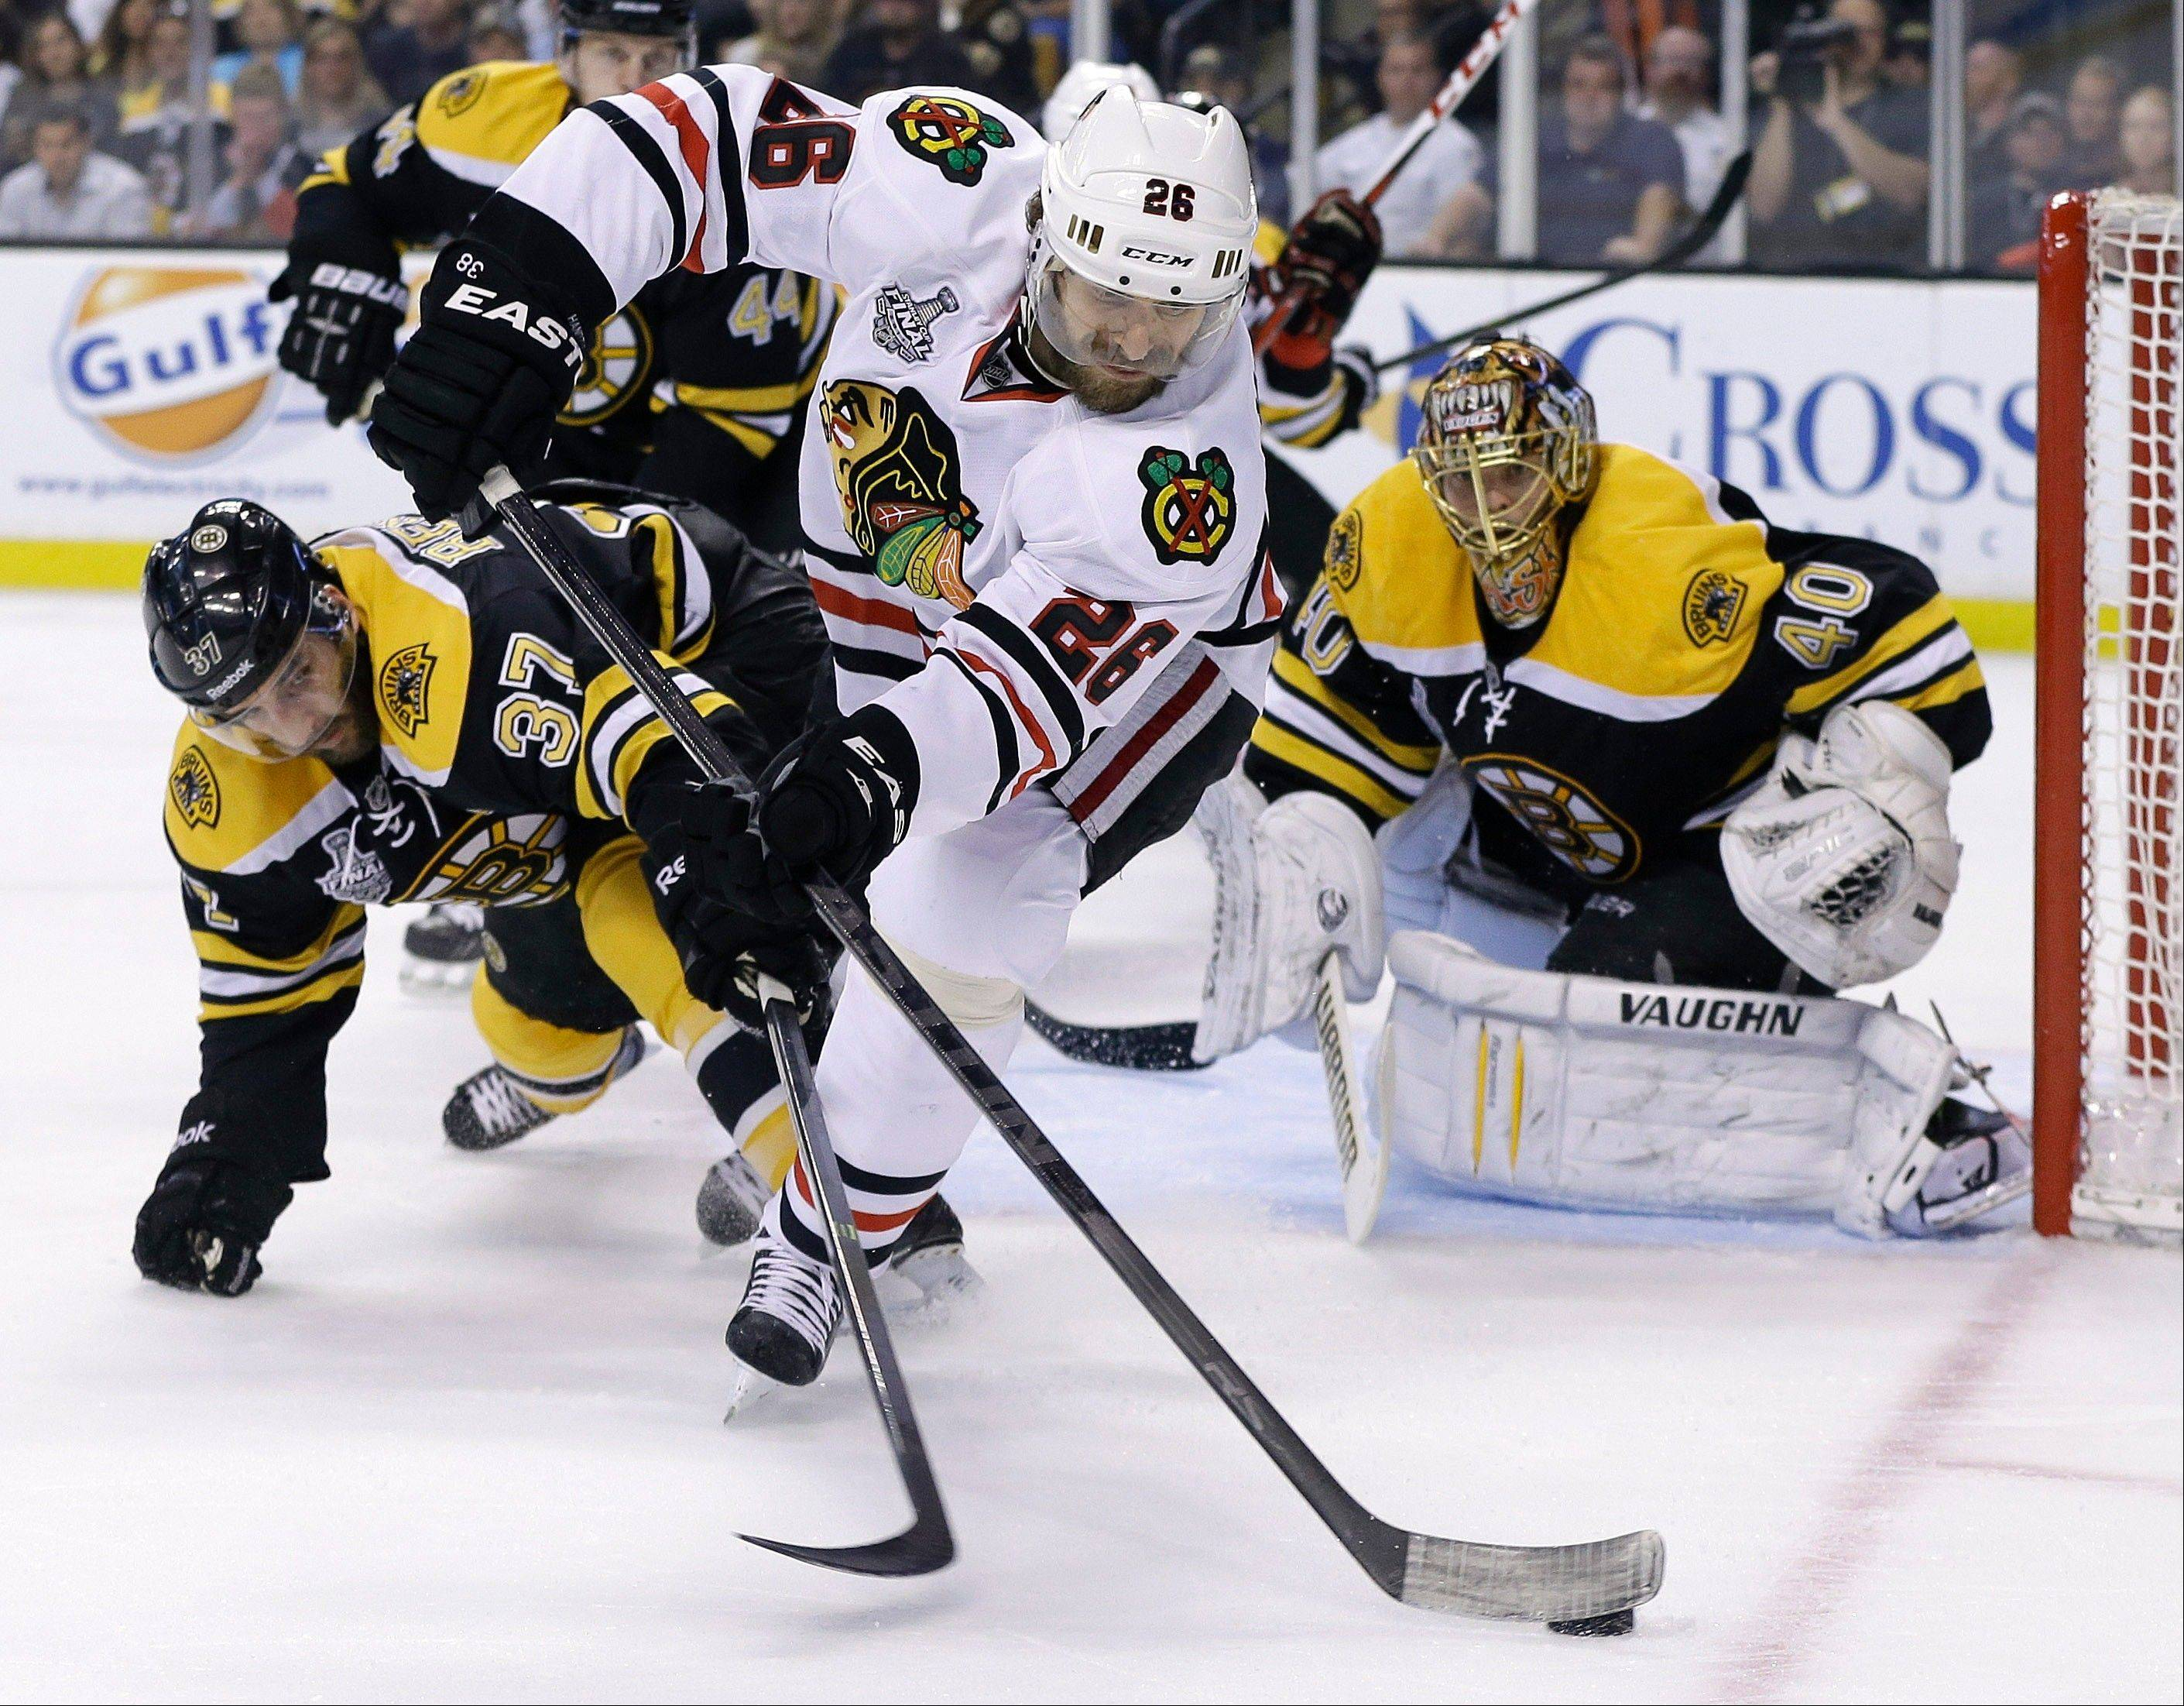 Blackhawks center Michal Handzus (26) battles with Bruins center Patrice Bergeron during Game 6 of the Stanley Cup Final on Monday in Boston.